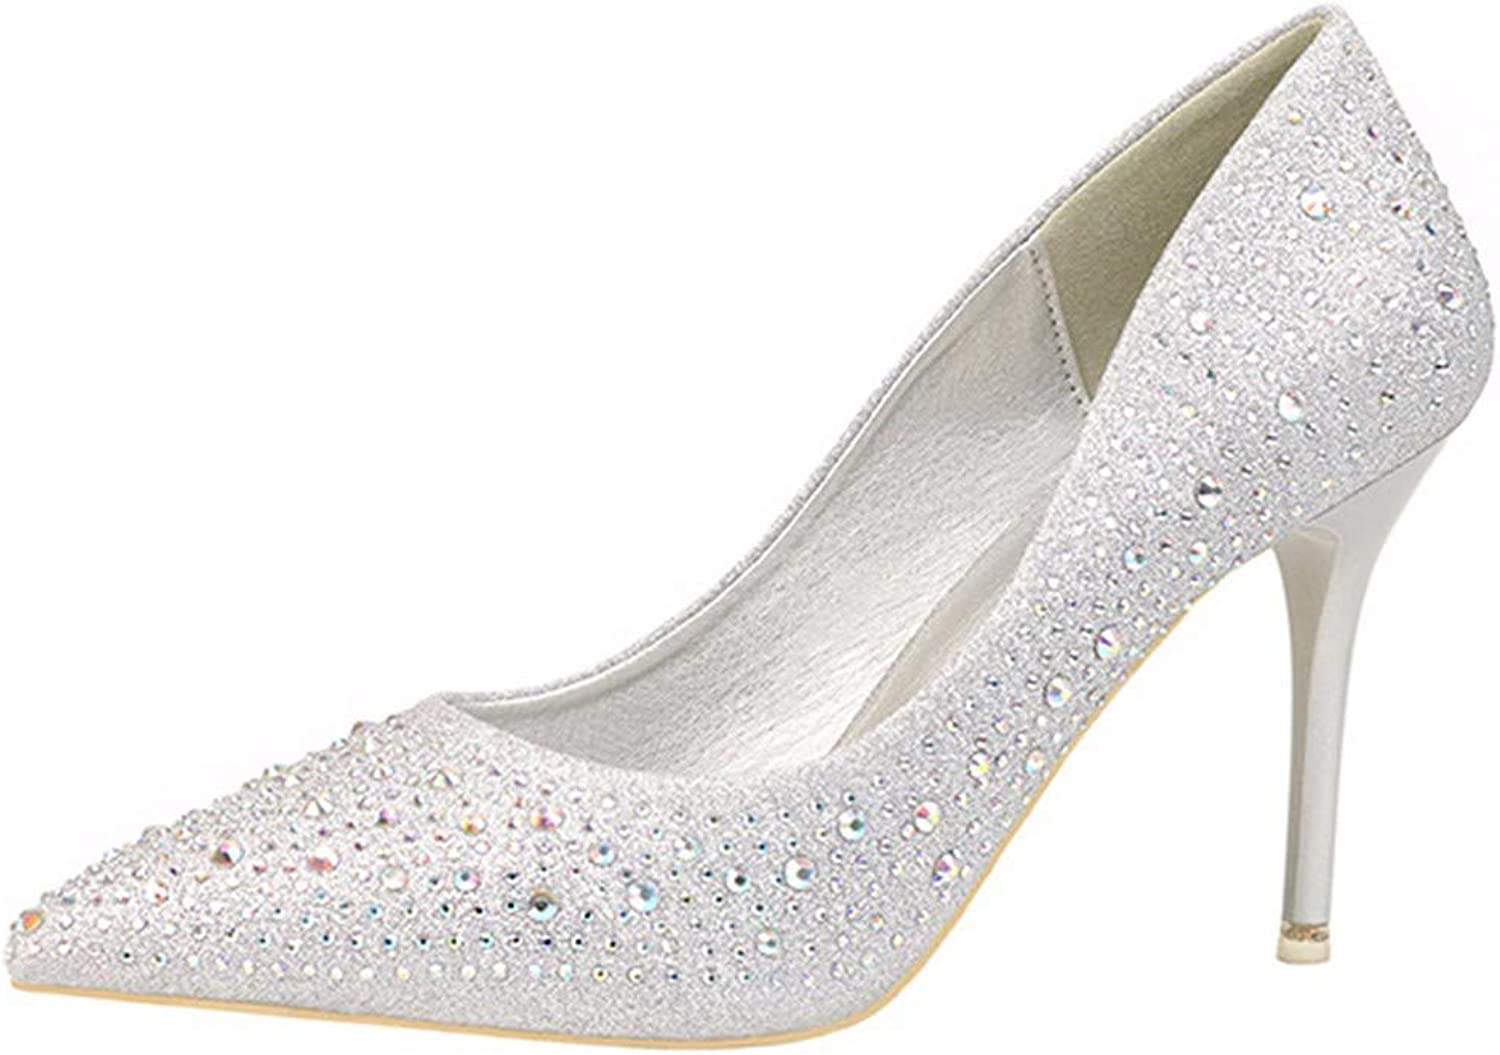 QPGGP-Women's shoes Euro-American Nightclub Women's shoes and Single shoes with Sharp Sequins and Pure colors